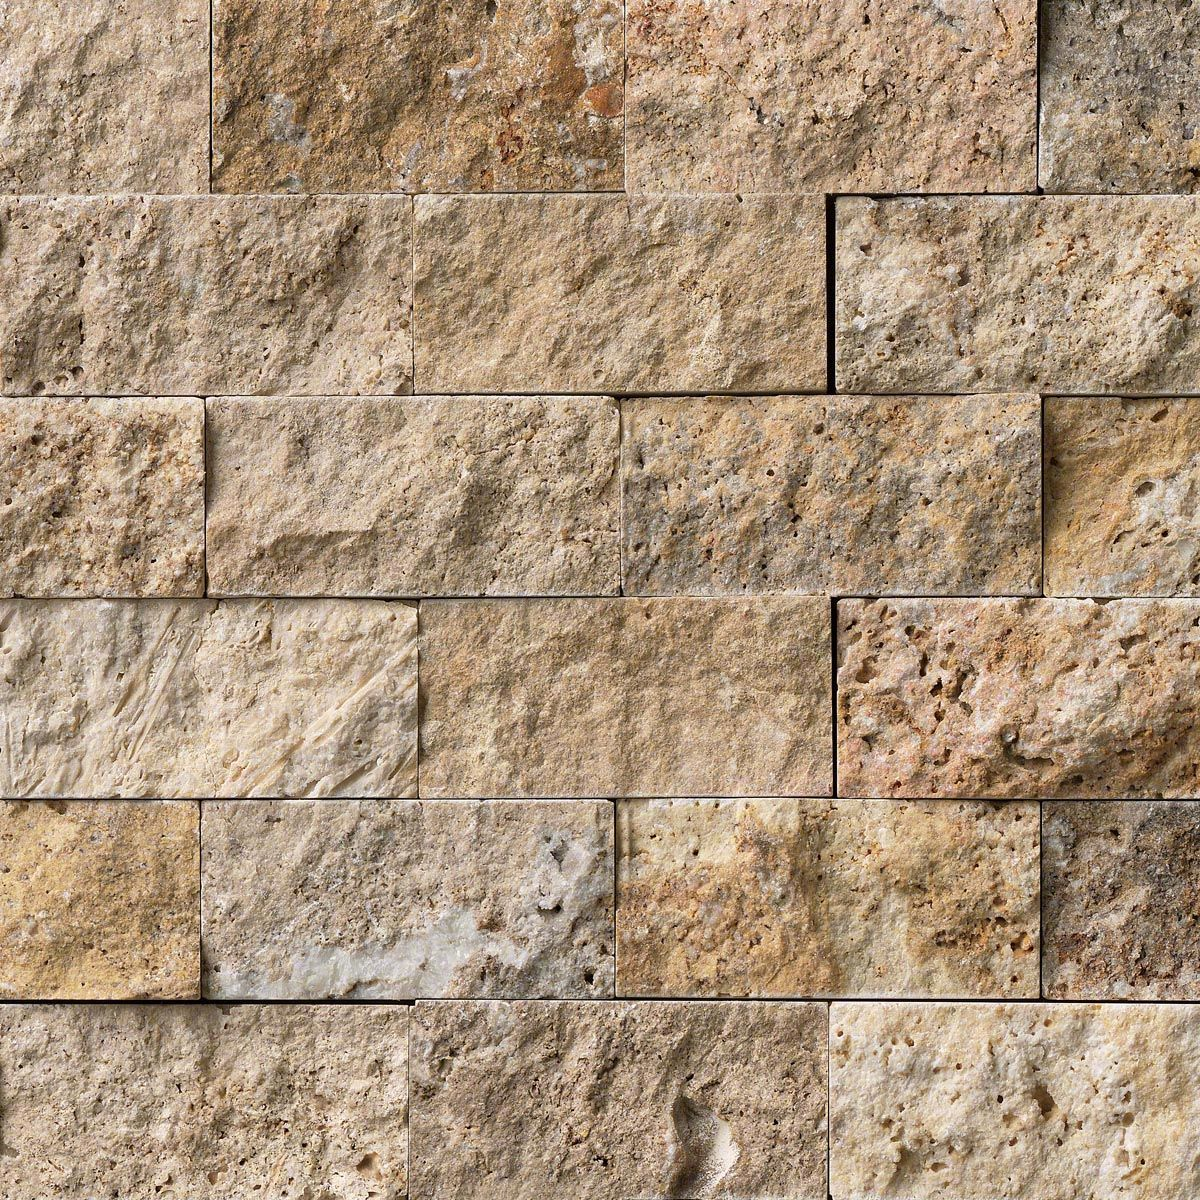 Tuscany scabas 2x4 split face in 12x12 mesh travertine backsplash tuscany scabas 2x4 split face in 12x12 mesh travertine backsplash wall tile dailygadgetfo Images